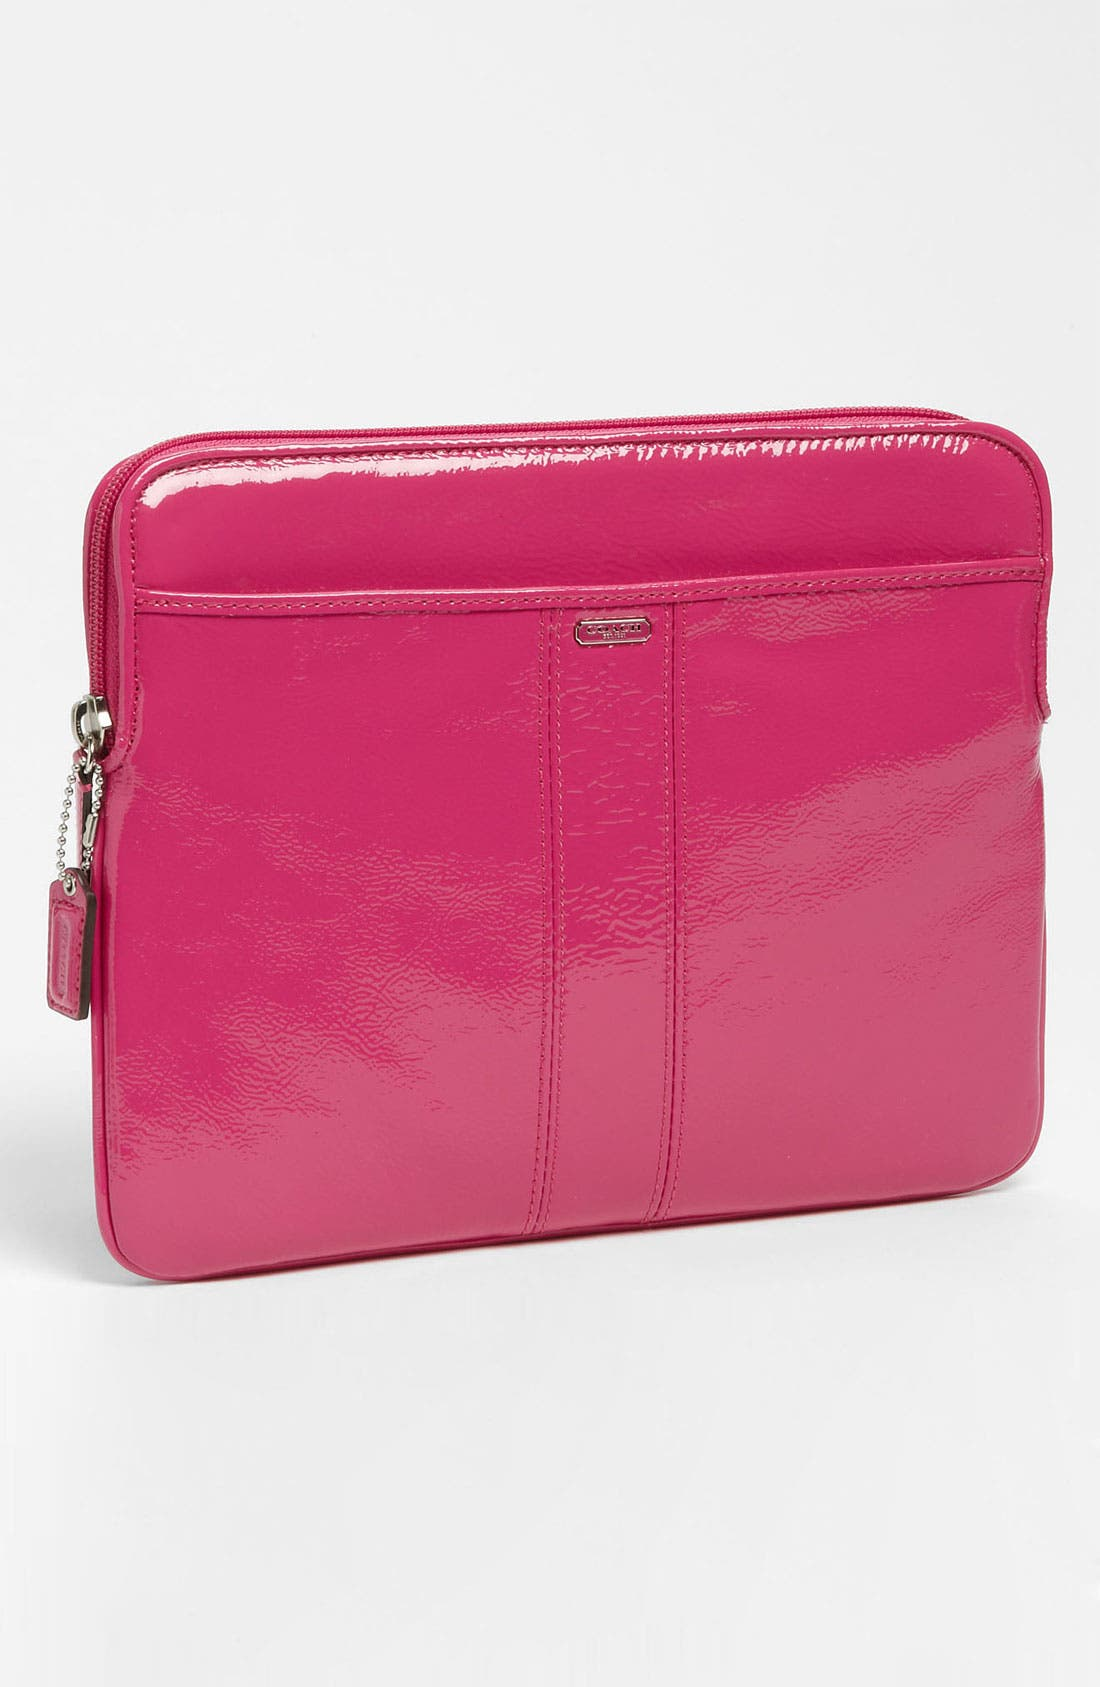 Main Image - COACH Leather Universal Tablet Case